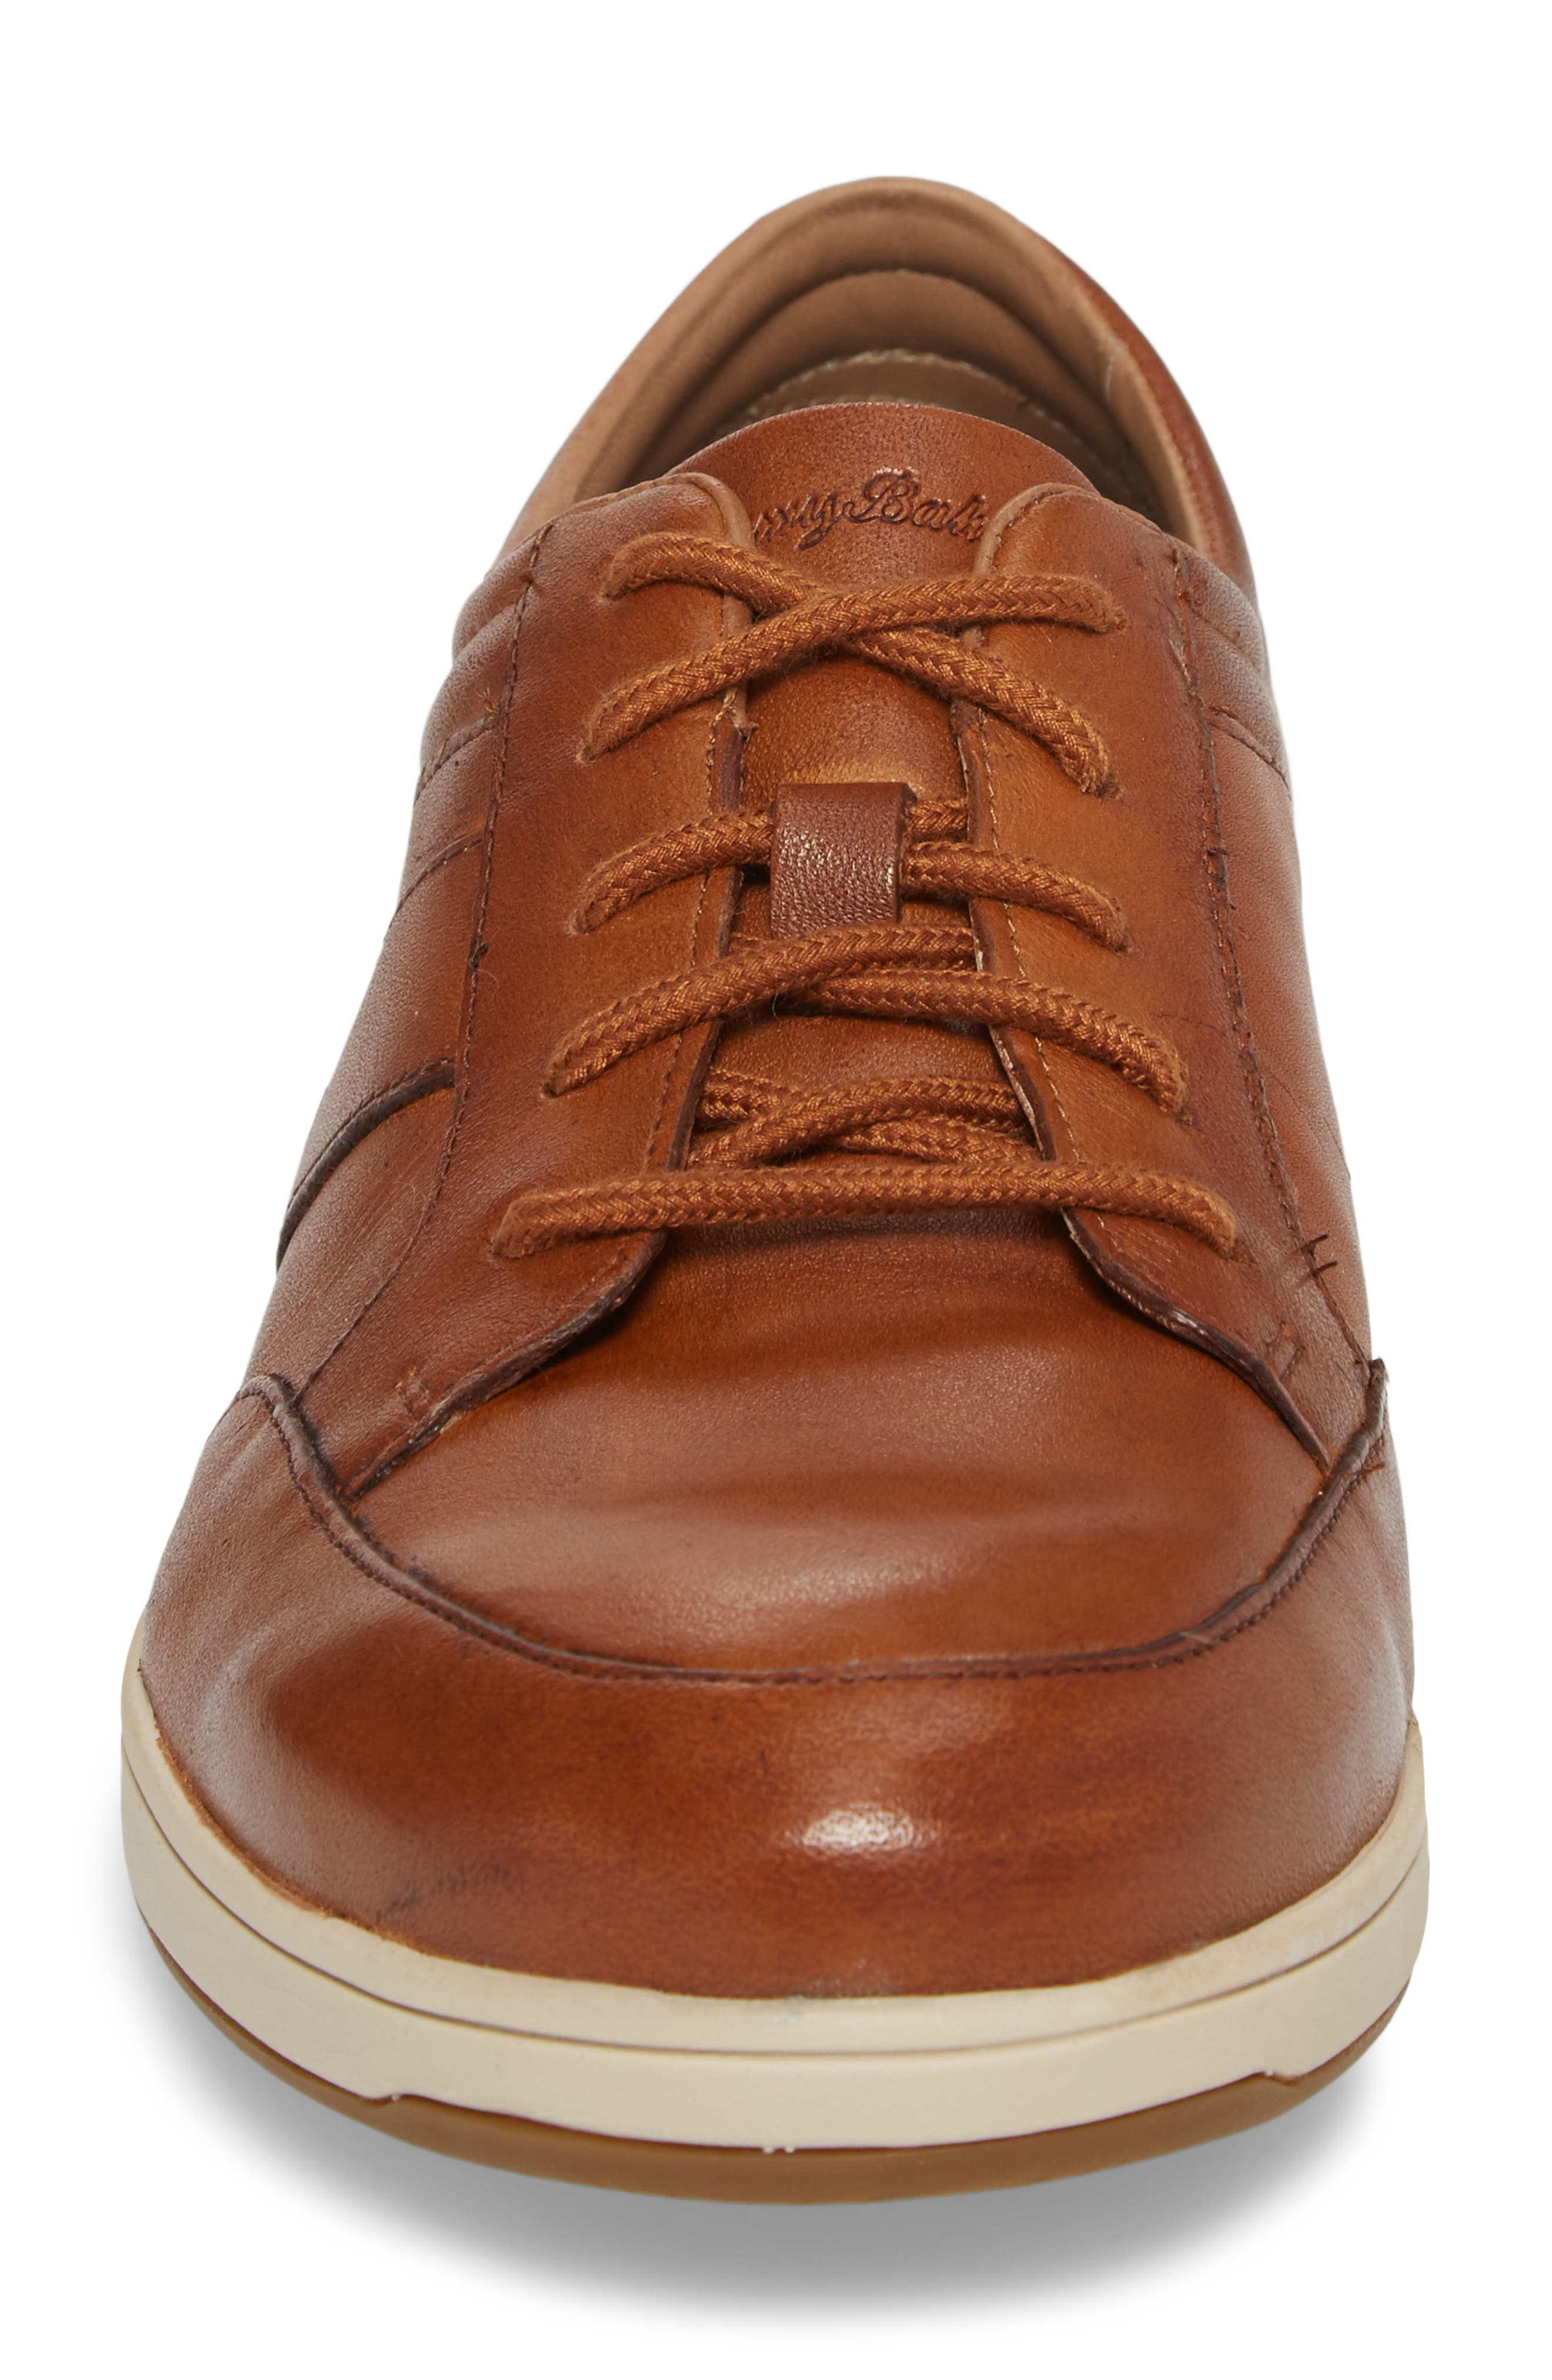 Caicos Authentic Low Top Sneaker,                             Alternate thumbnail 4, color,                             TAN LEATHER